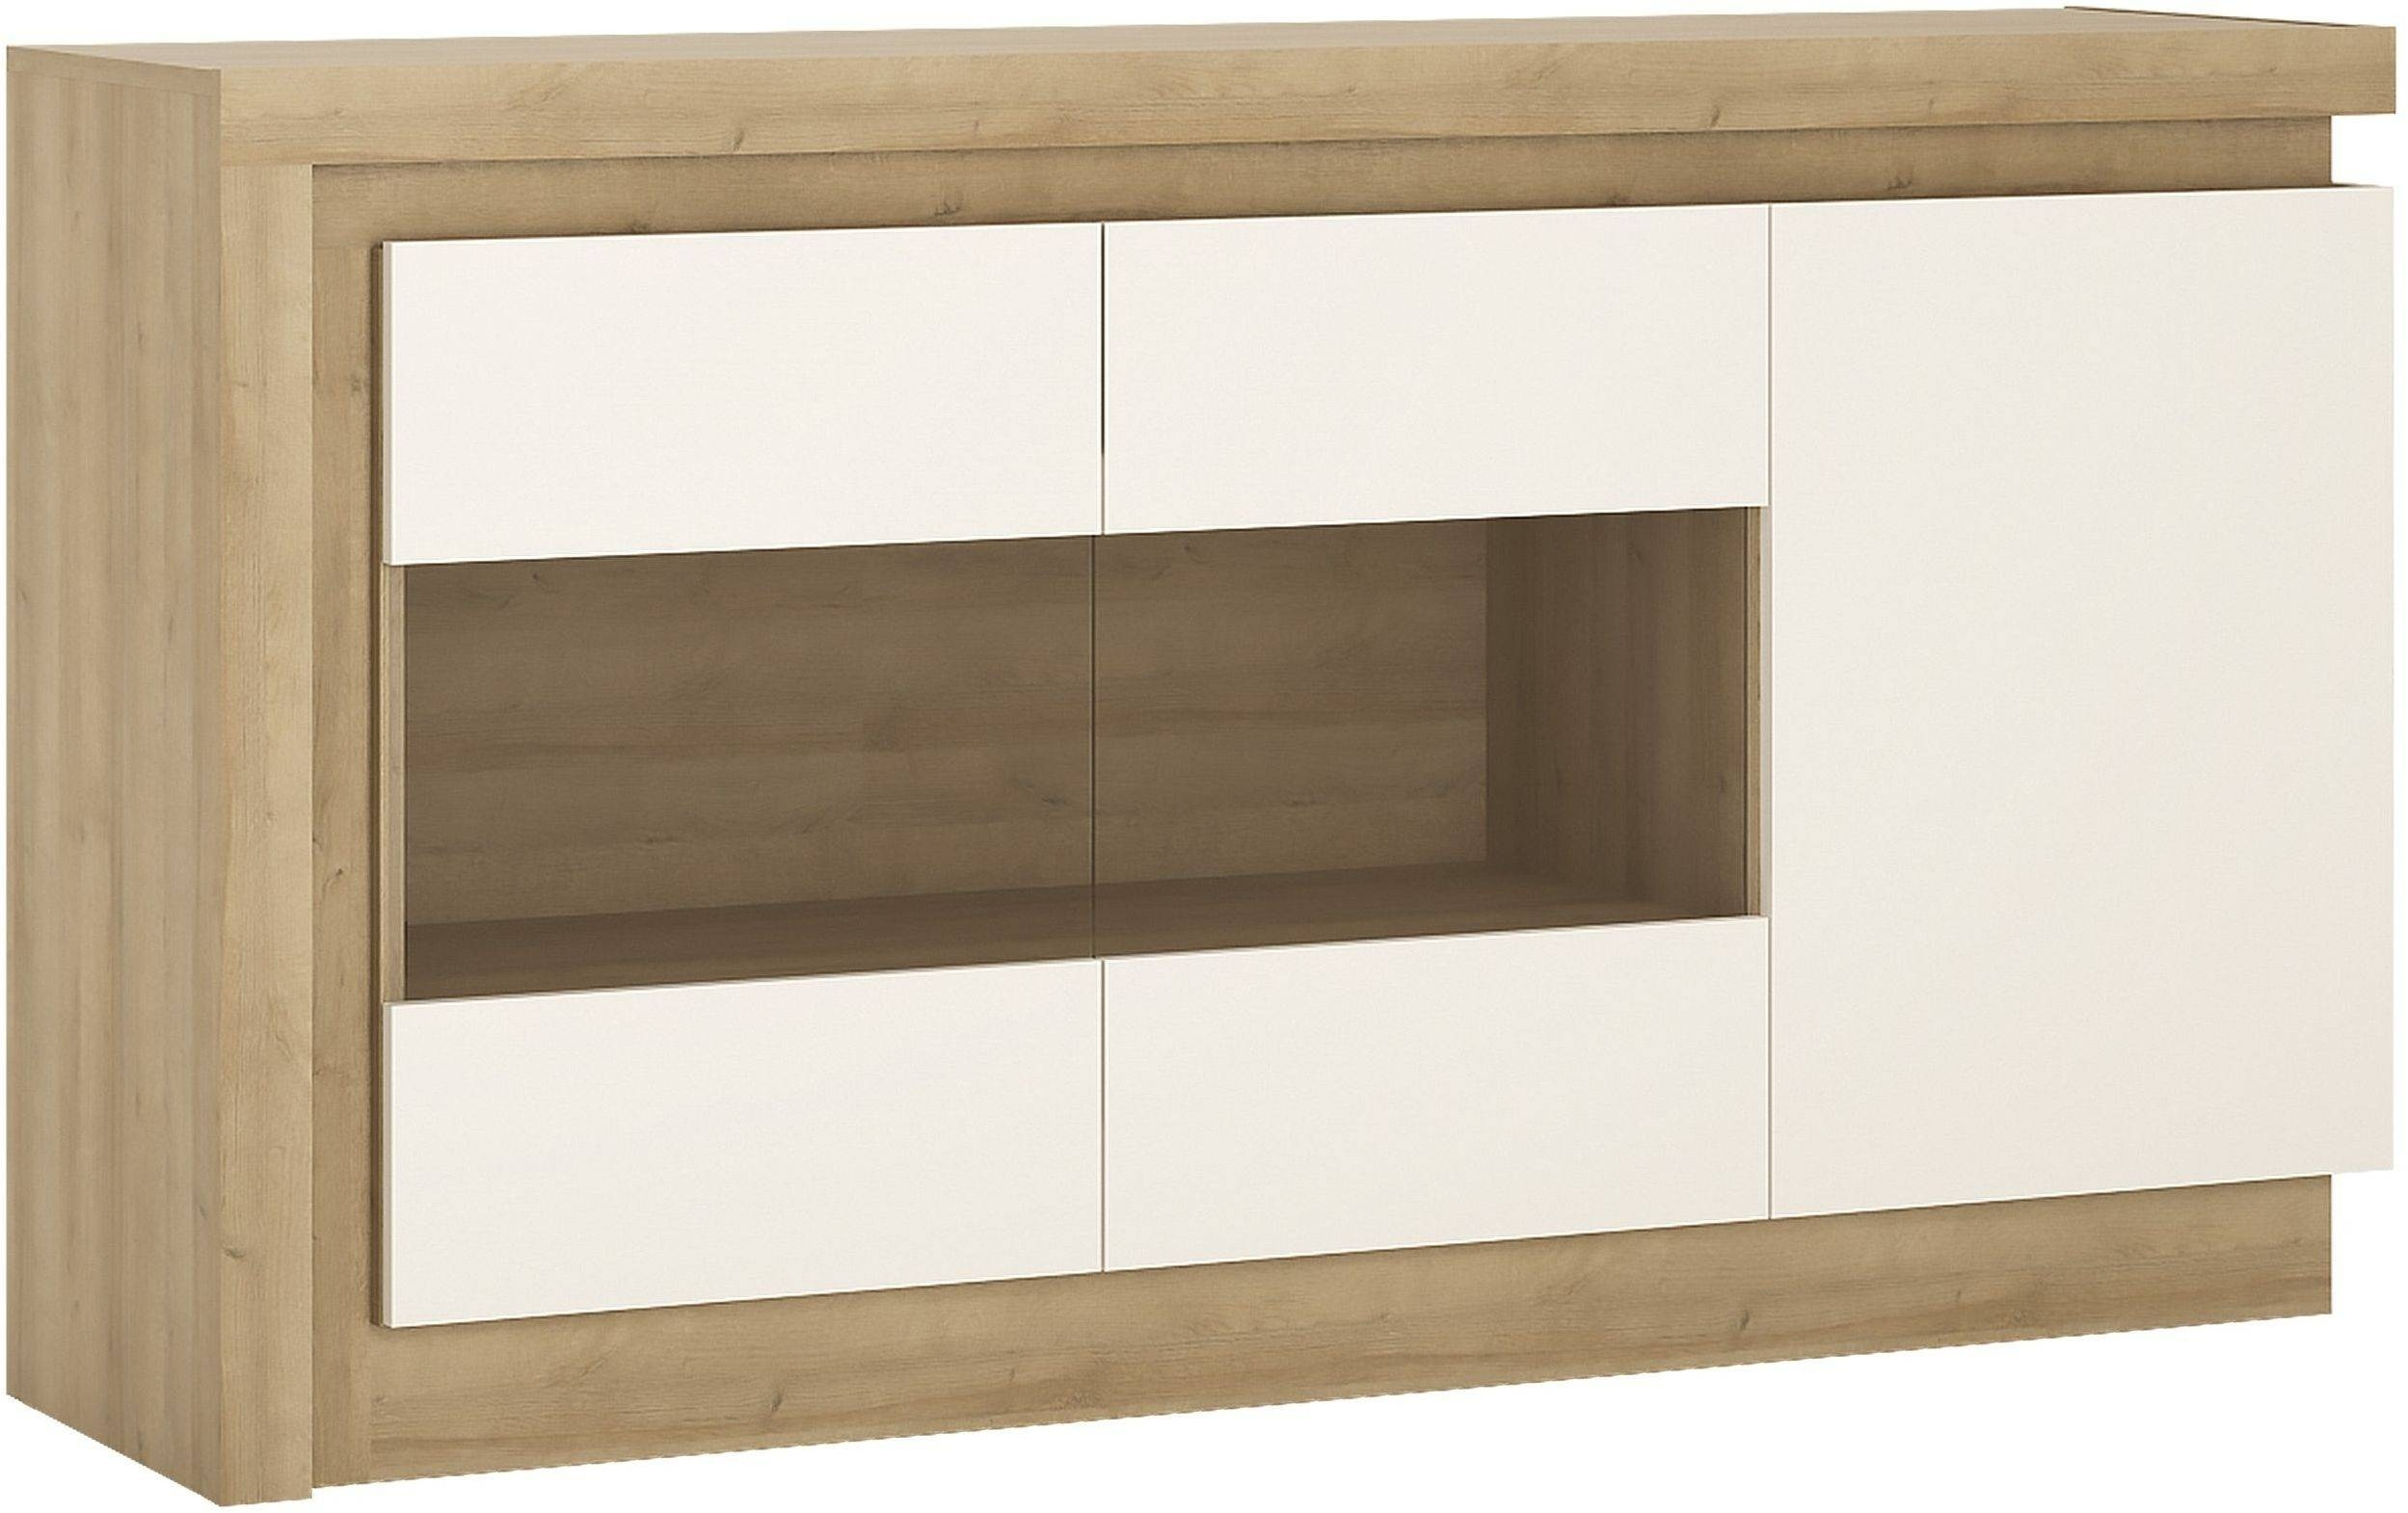 Buy Lyon Riviera Oak And White High Gloss Sideboard - 3 Door inside High Gloss Sideboards (Image 5 of 30)